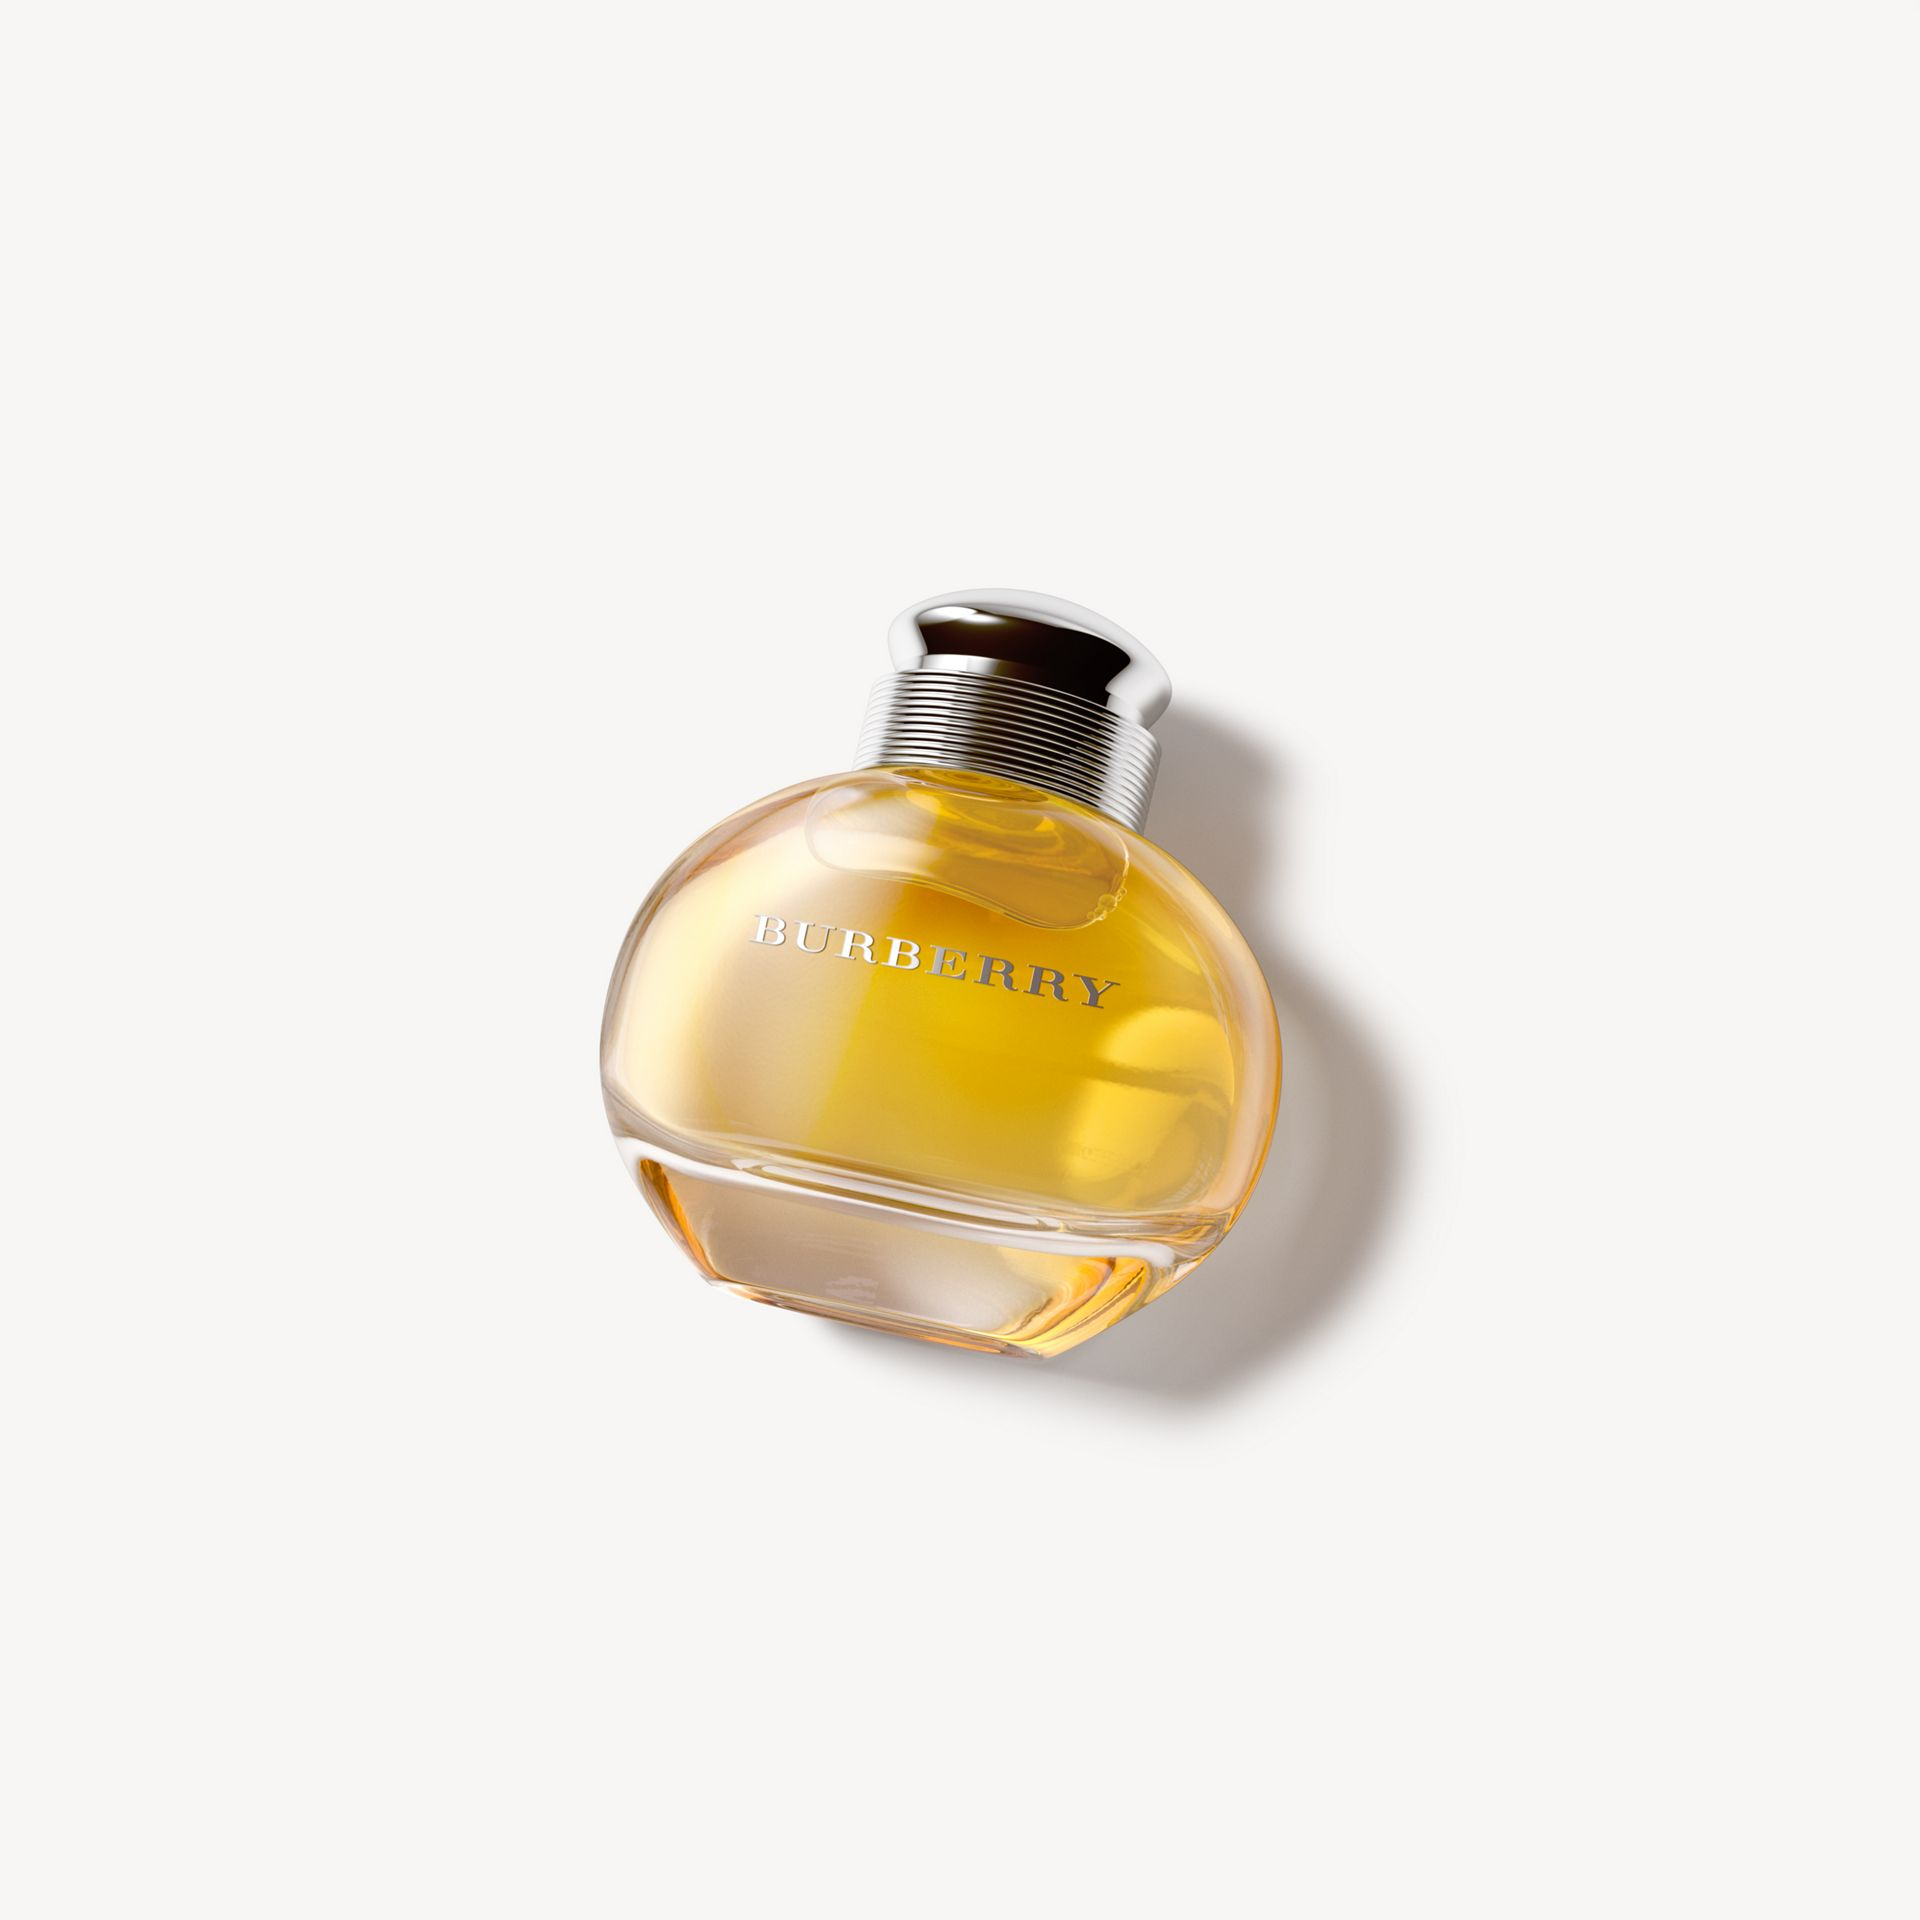 Burberry For Women Eau de Parfum 50ml - Women | Burberry Canada - gallery image 1